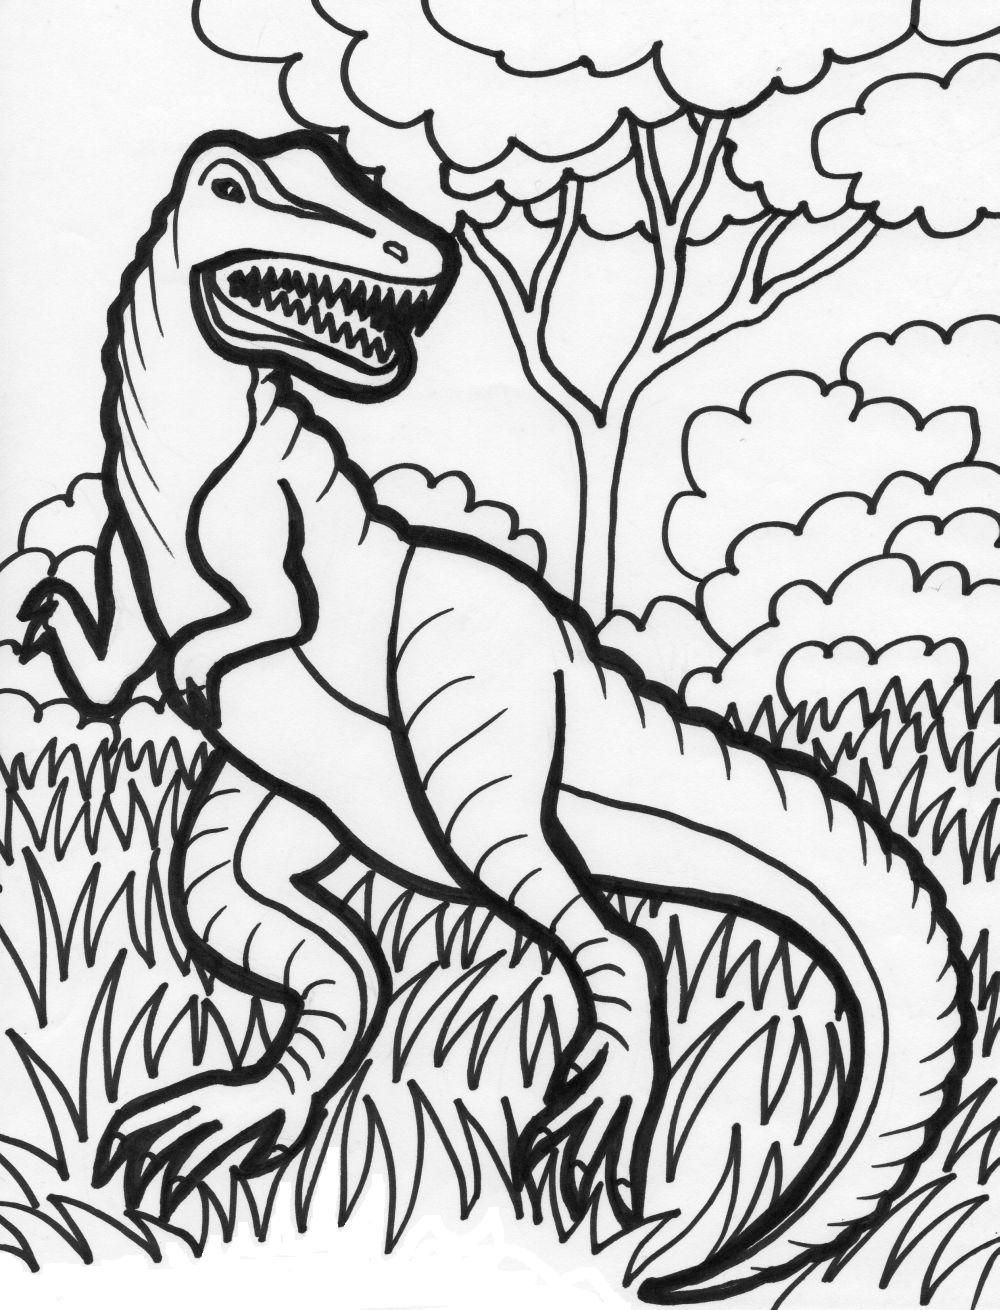 Pin by ColoringsWorld.com on Dinosaur Coloring Pages   Pinterest